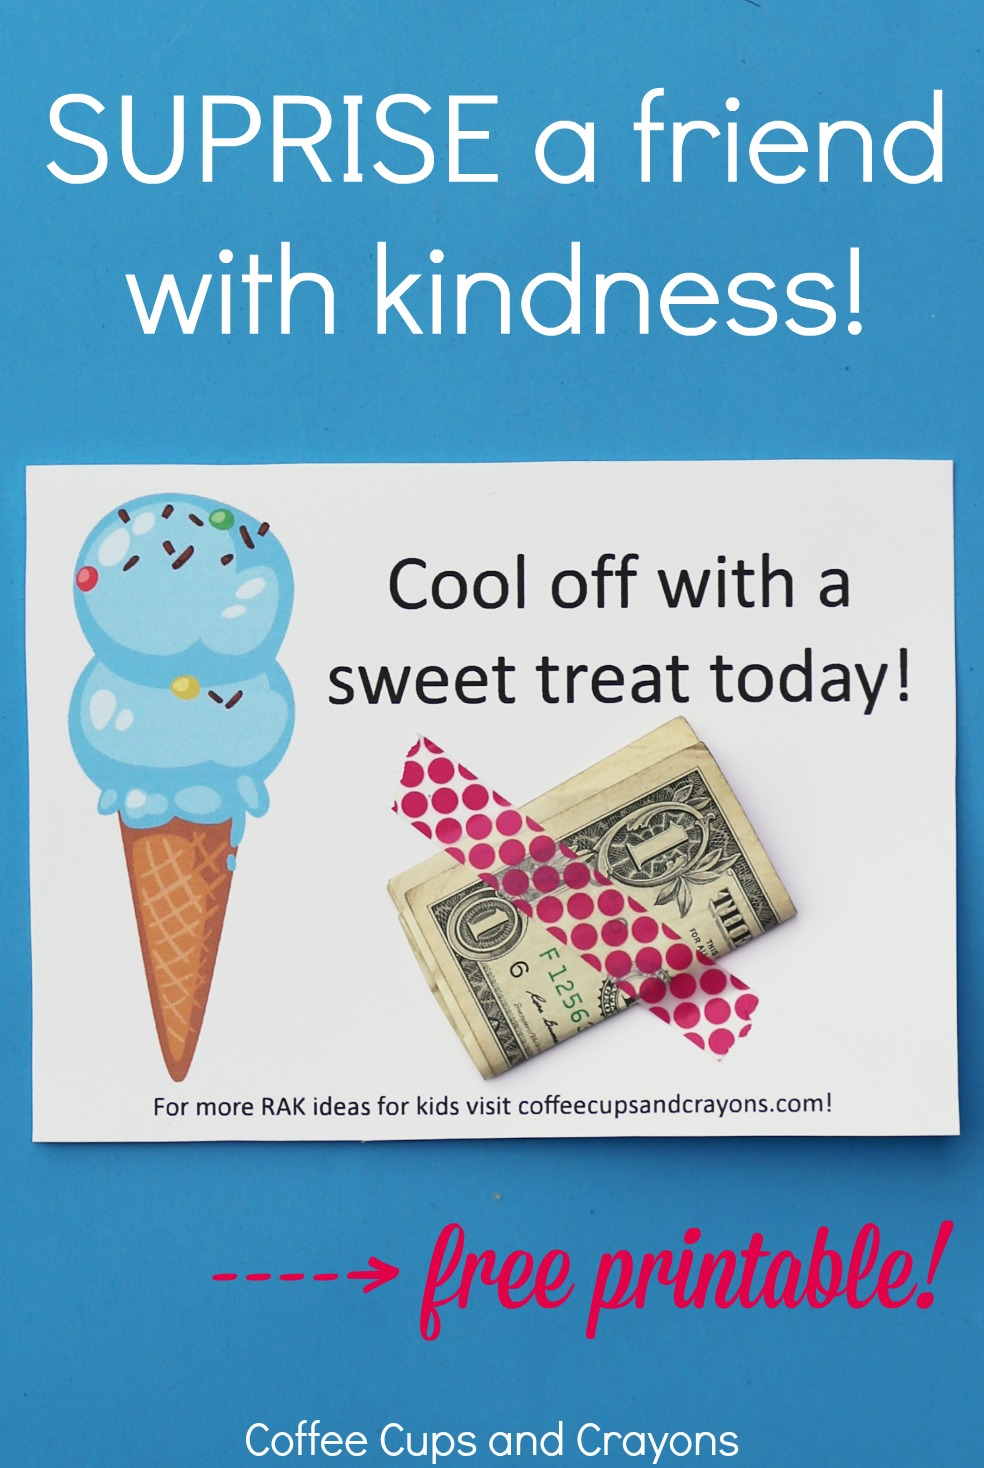 Secret act of kindness for kids--surprise a friend with ice cream money! Free printable to use in post.